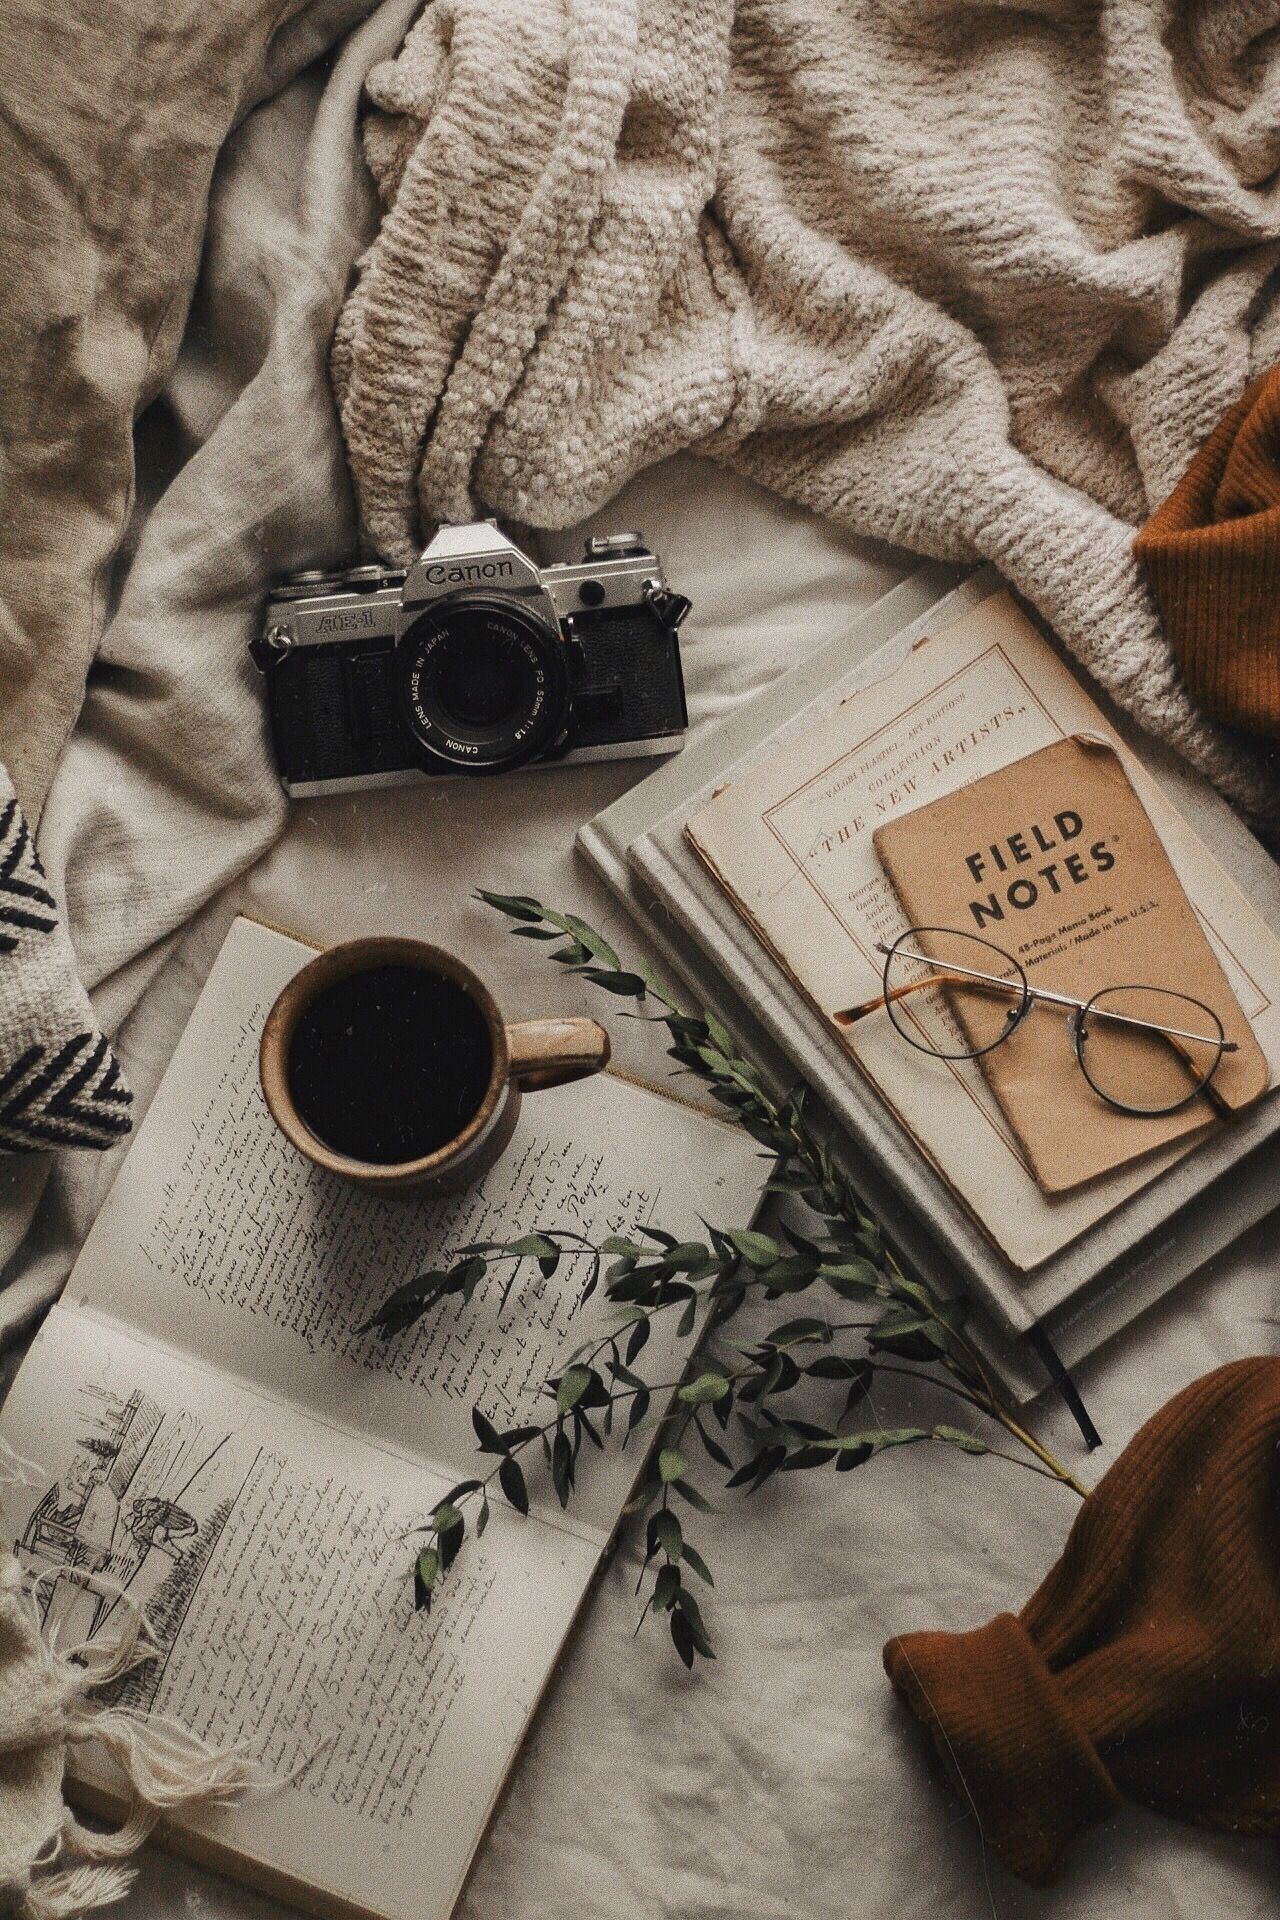 There are so many books that made me feel like I belonged. And most of the  time I read to feel that I bel. in 2020 | Cozy aesthetic, Photo book  inspiration,